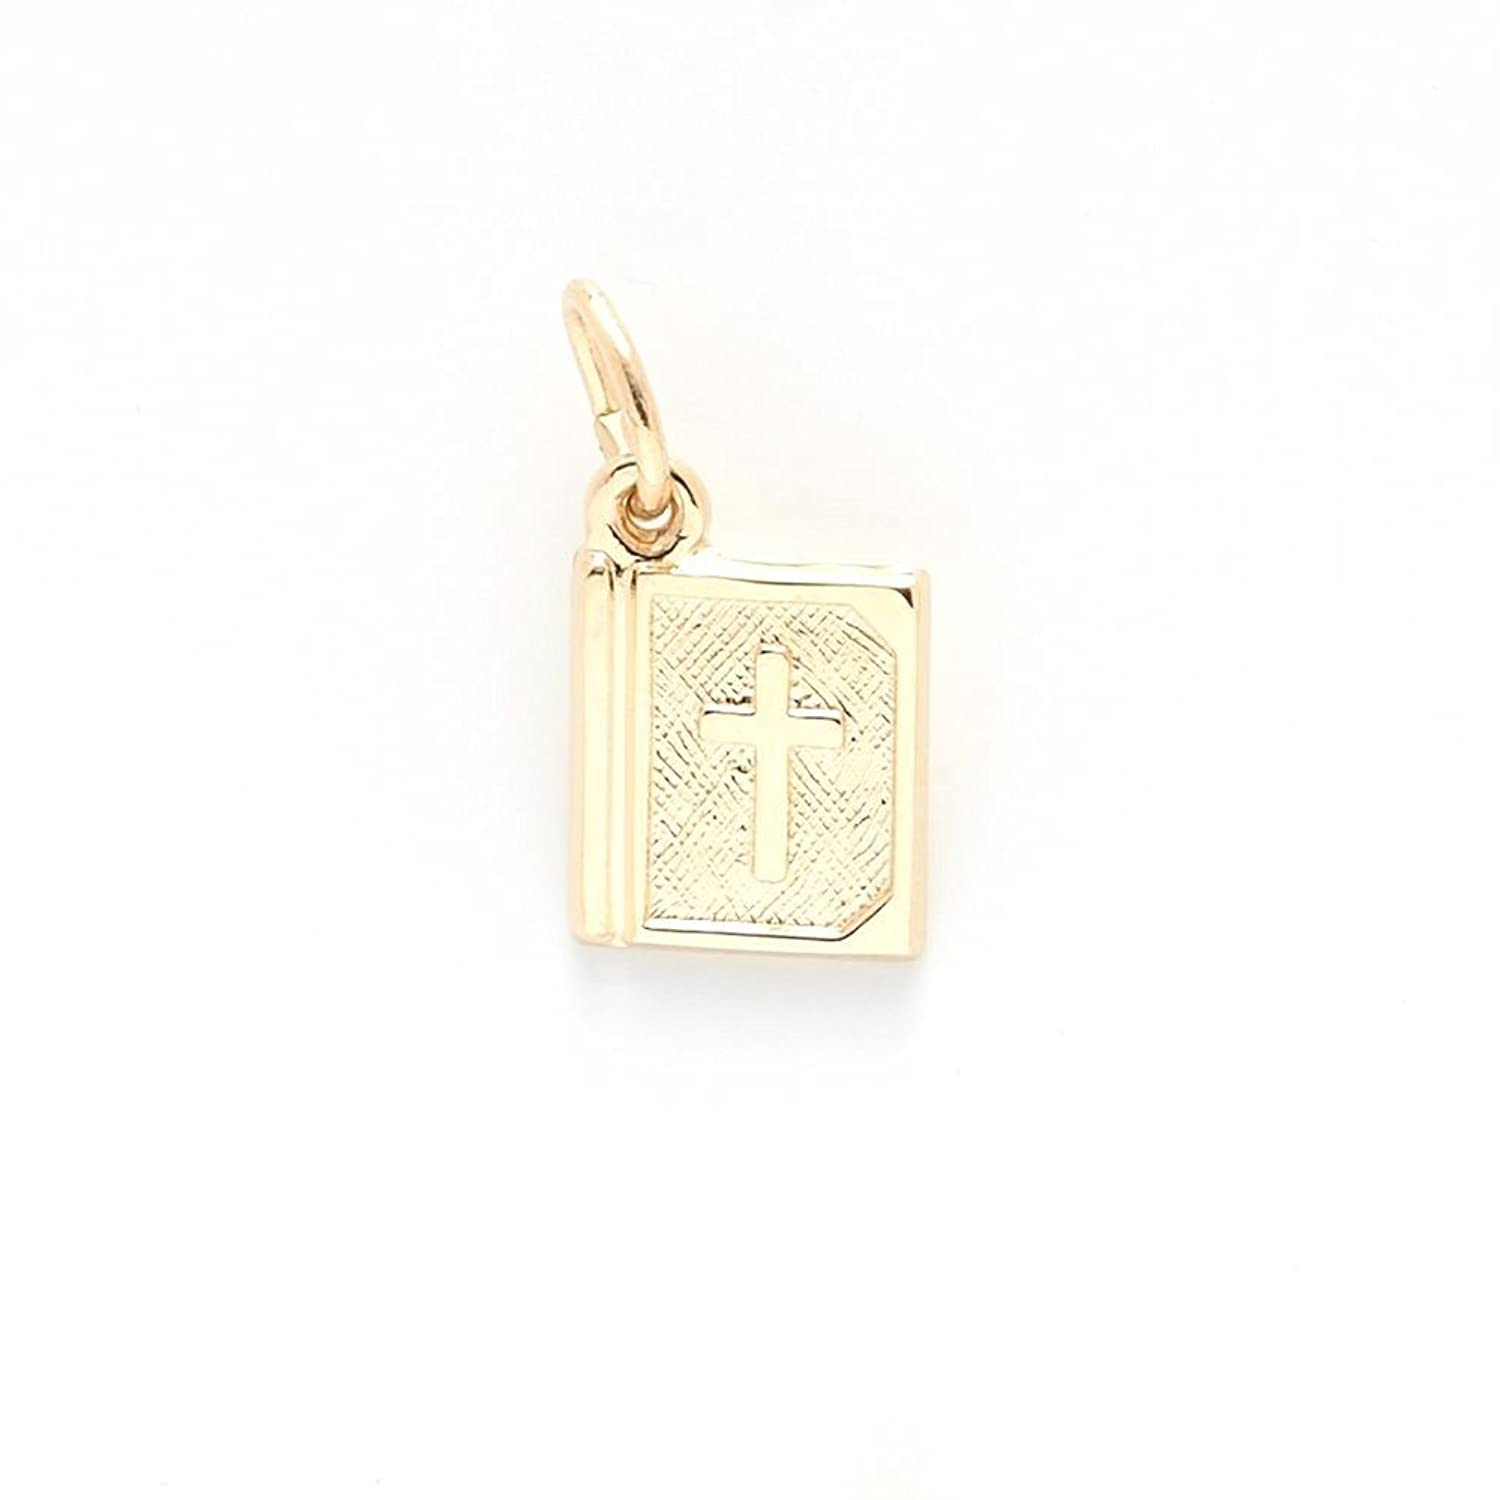 10k Yellow Gold Bible Charm, Charms for Bracelets and Necklaces